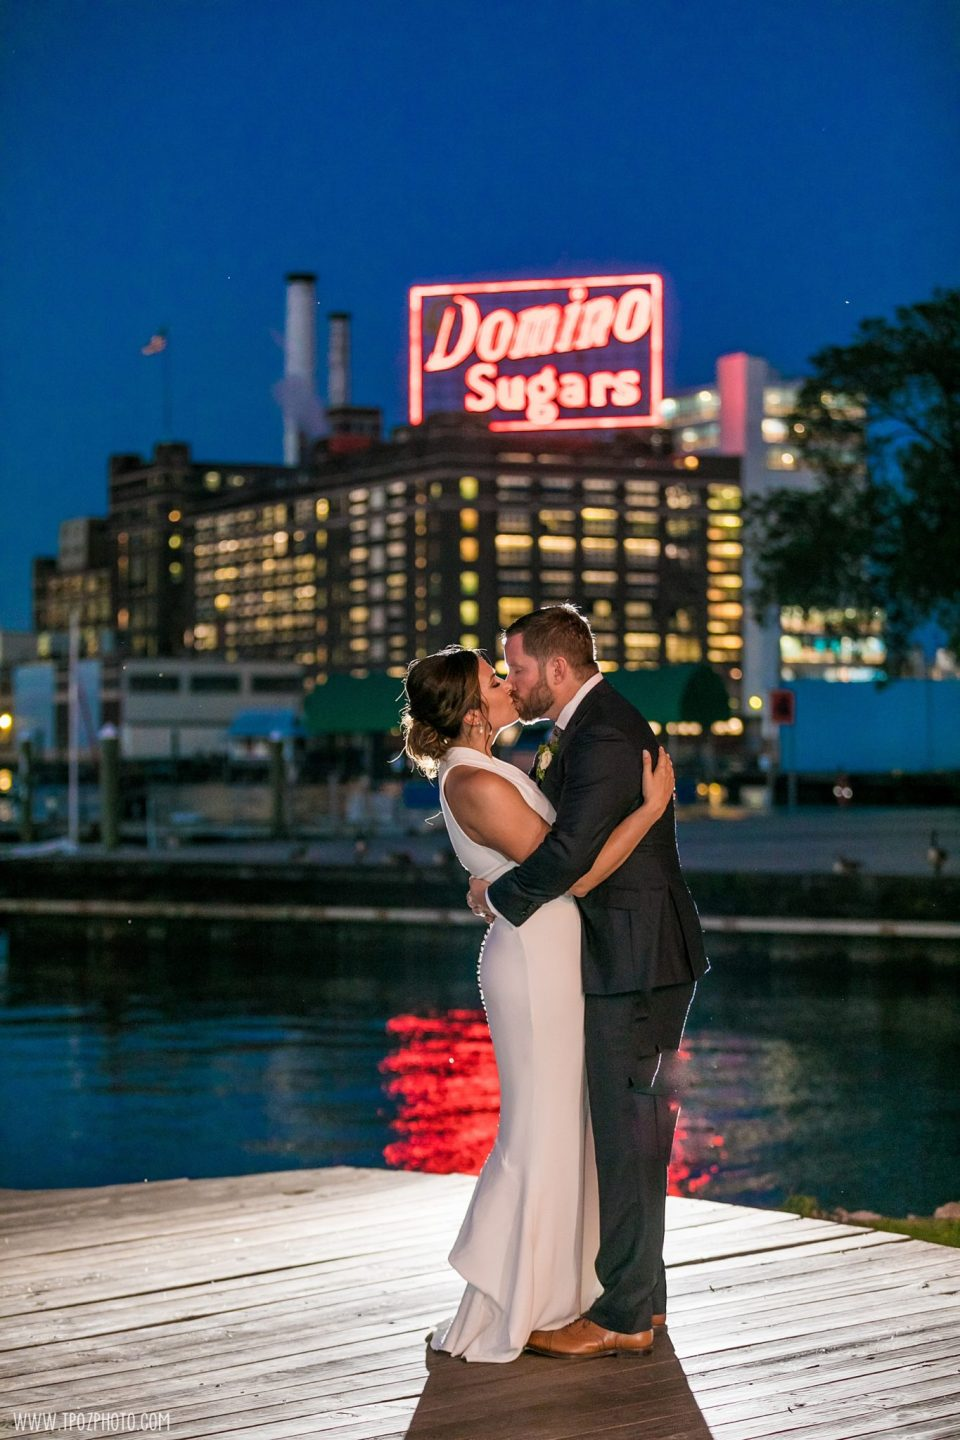 Baltimore Museum of Industry wedding photos night shot domino sign